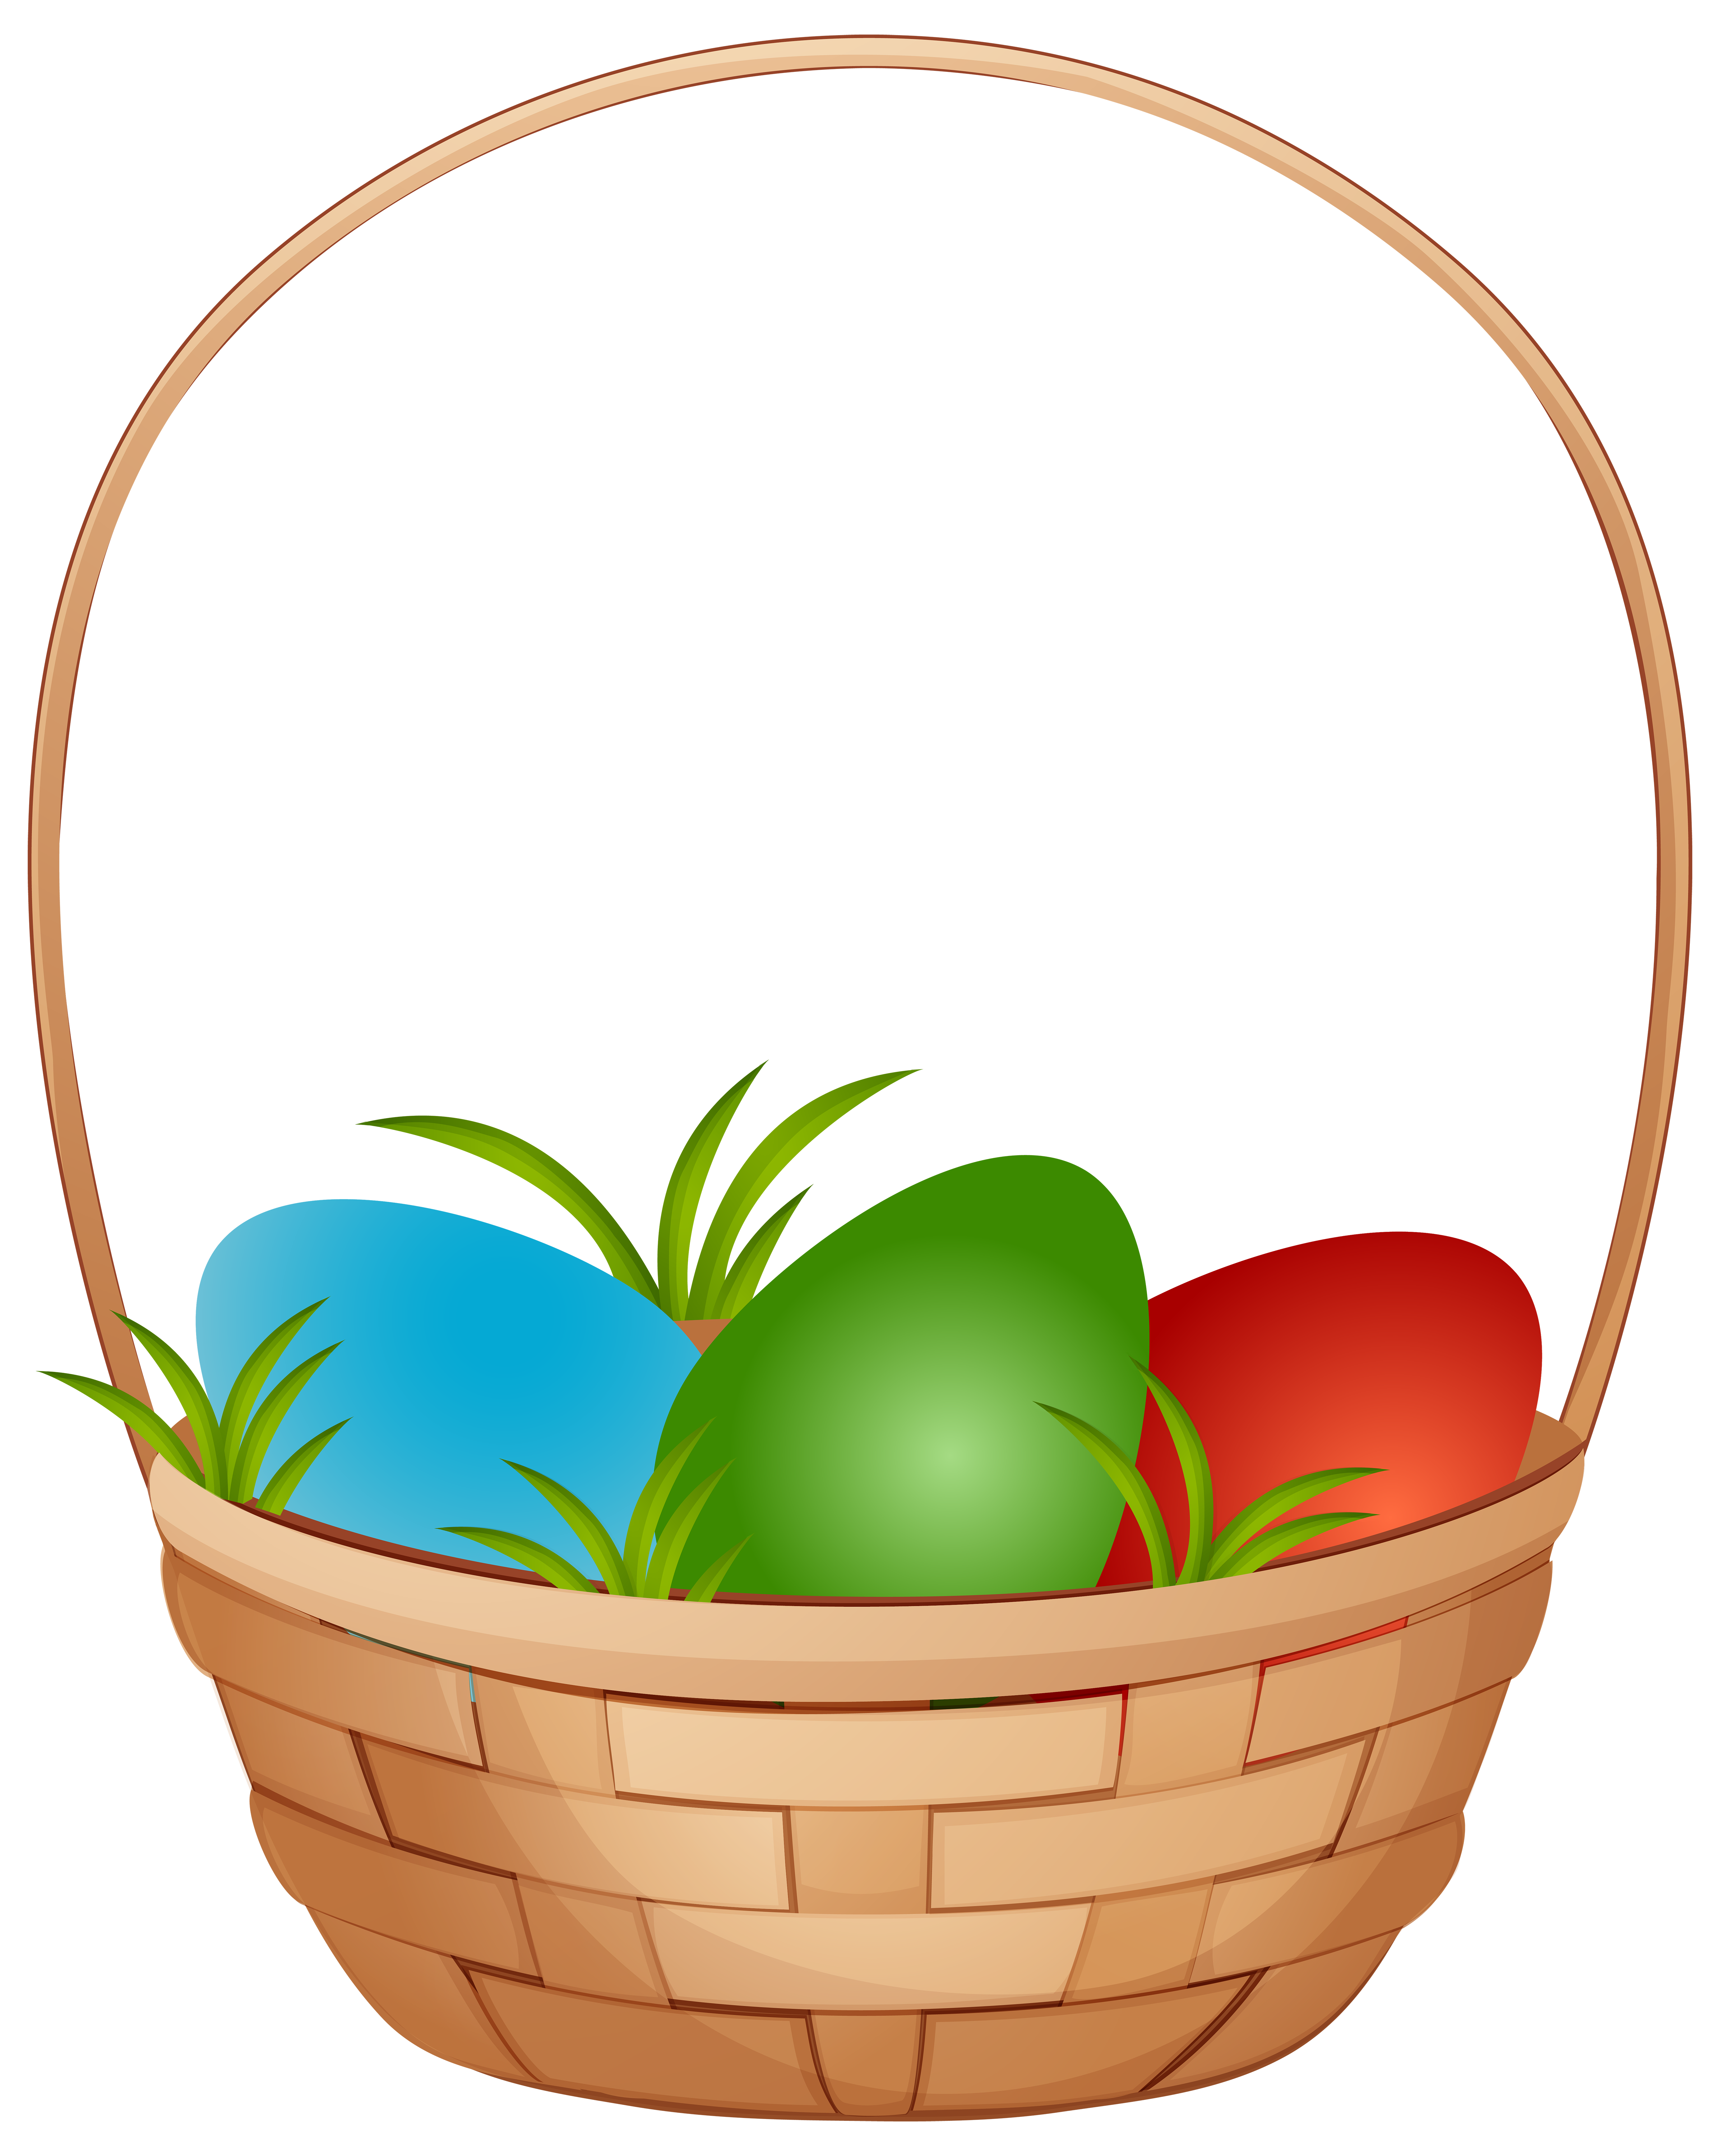 Easter Basket with Eggs PNG Clip Art Image.